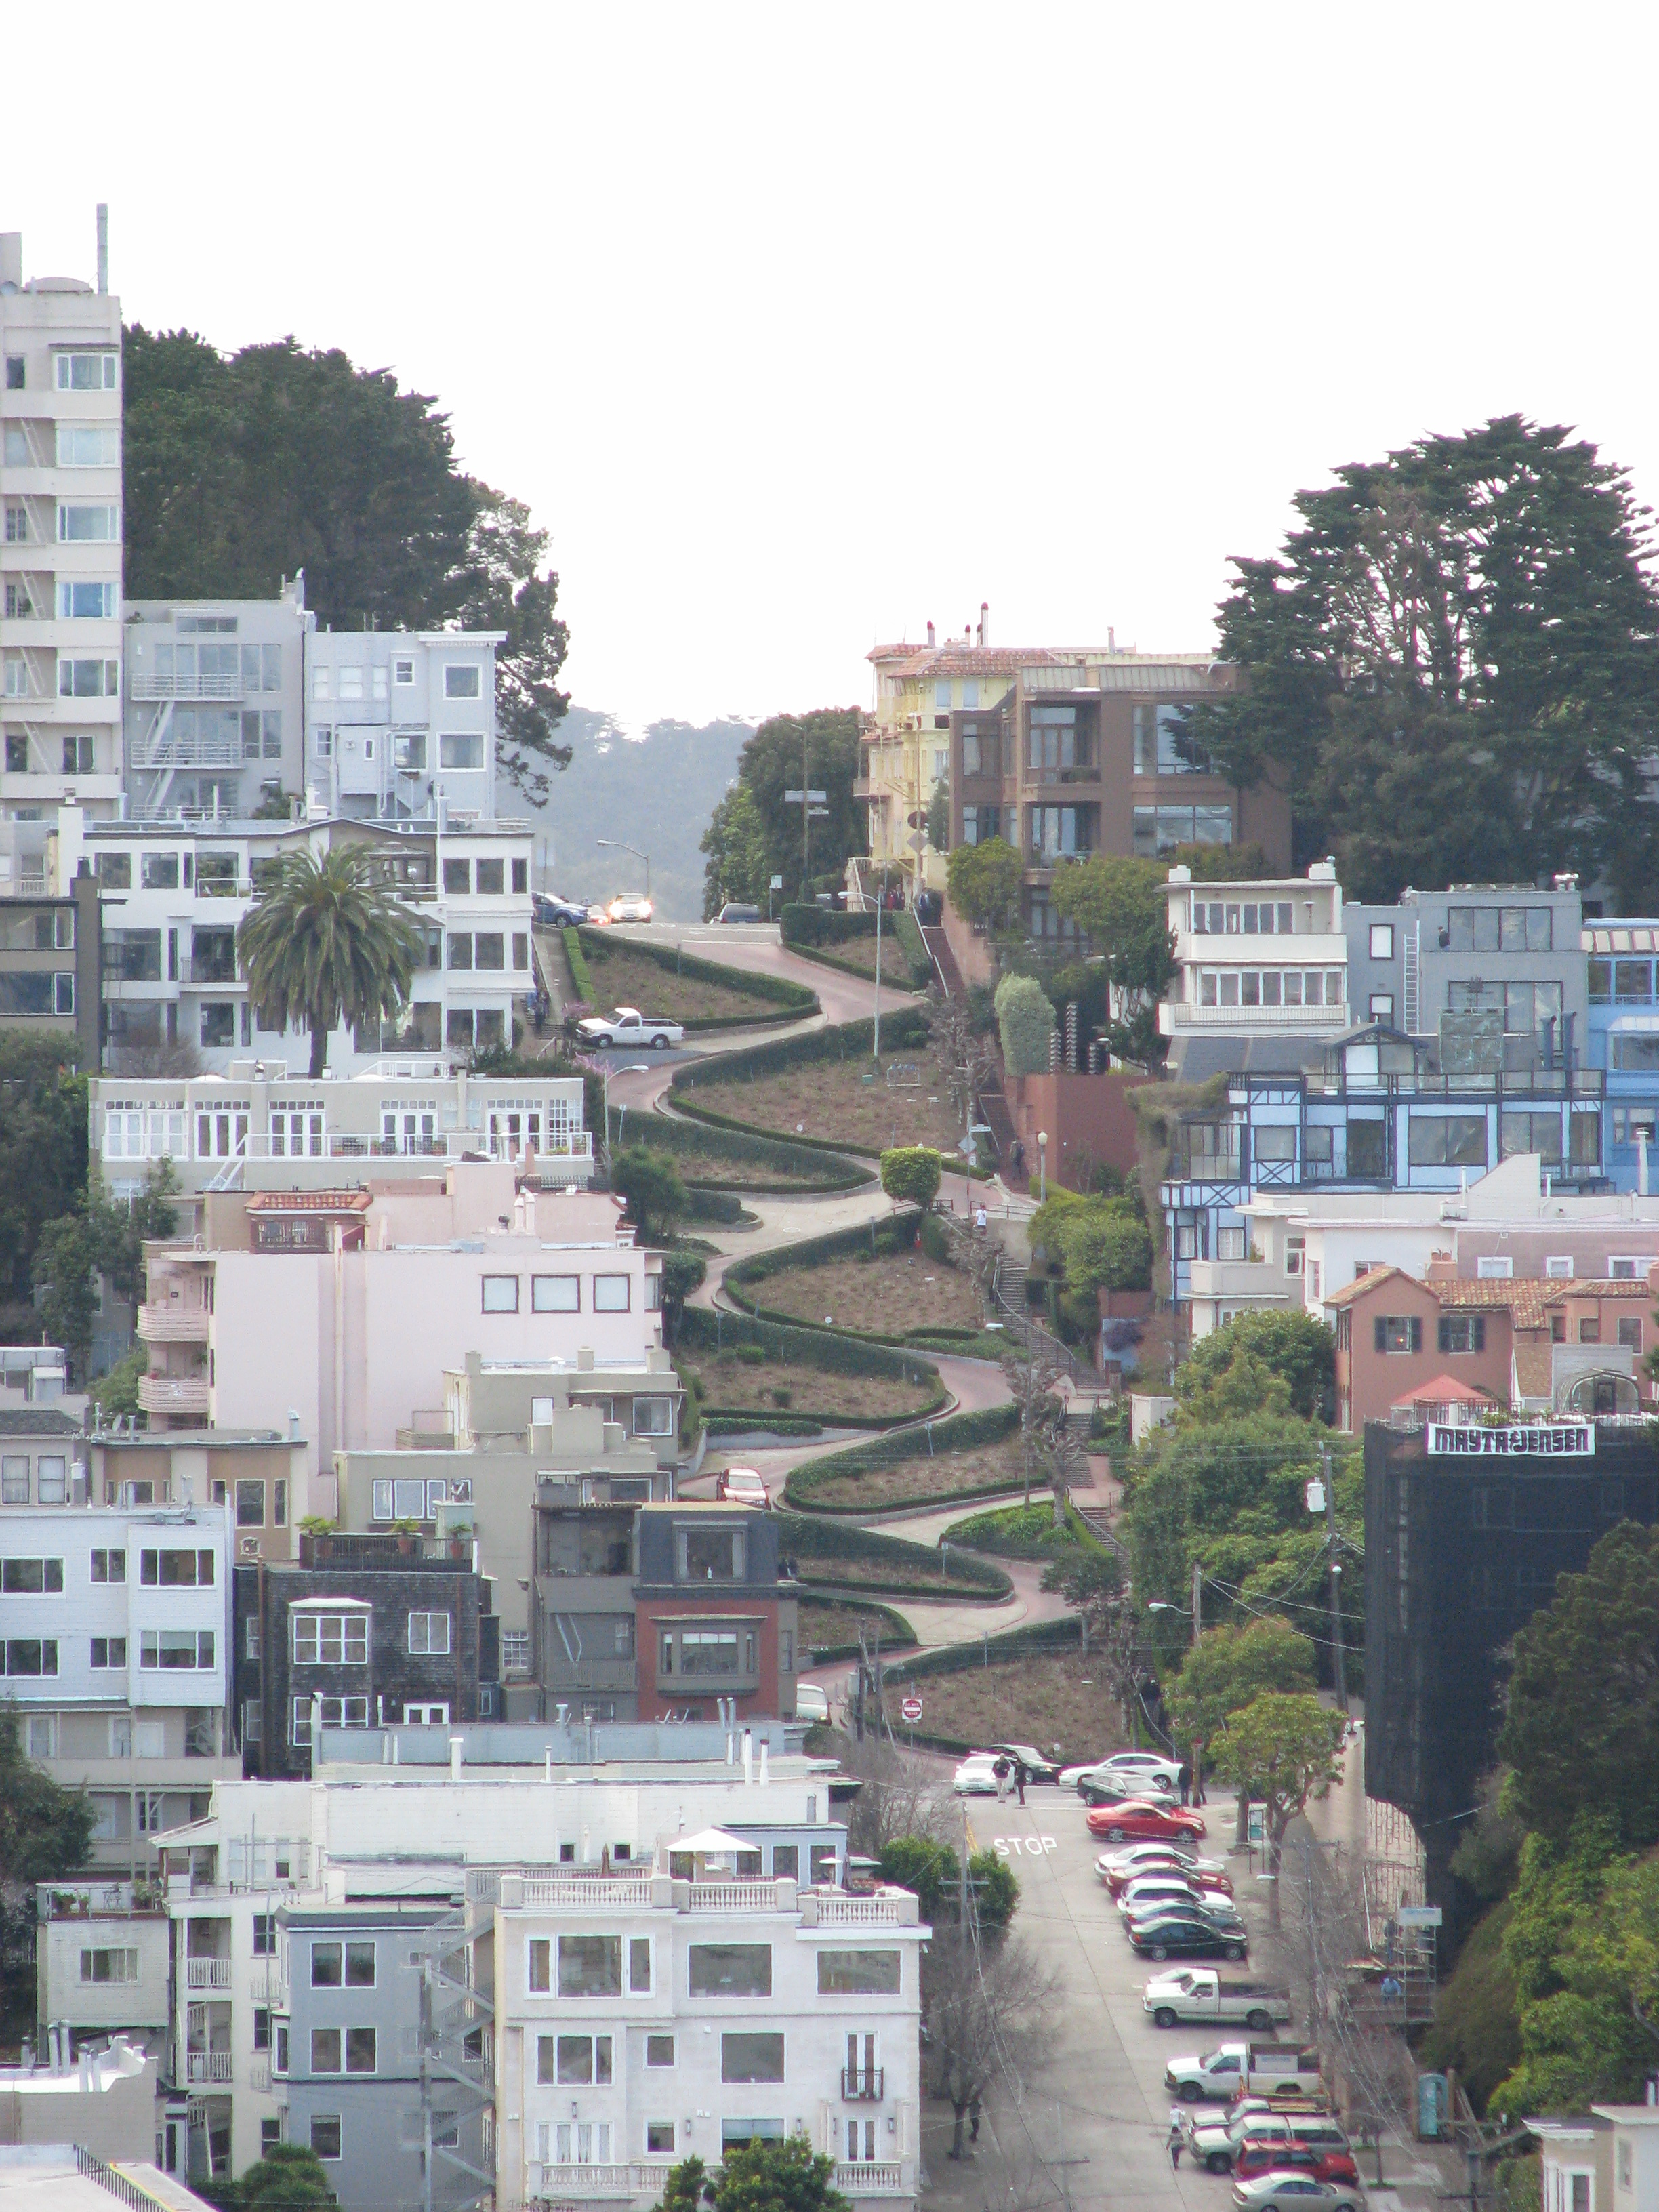 Fietsbel/Wikimedia Commons: Lombard Street as viewed from Telegraph Hill (Coit Tower).